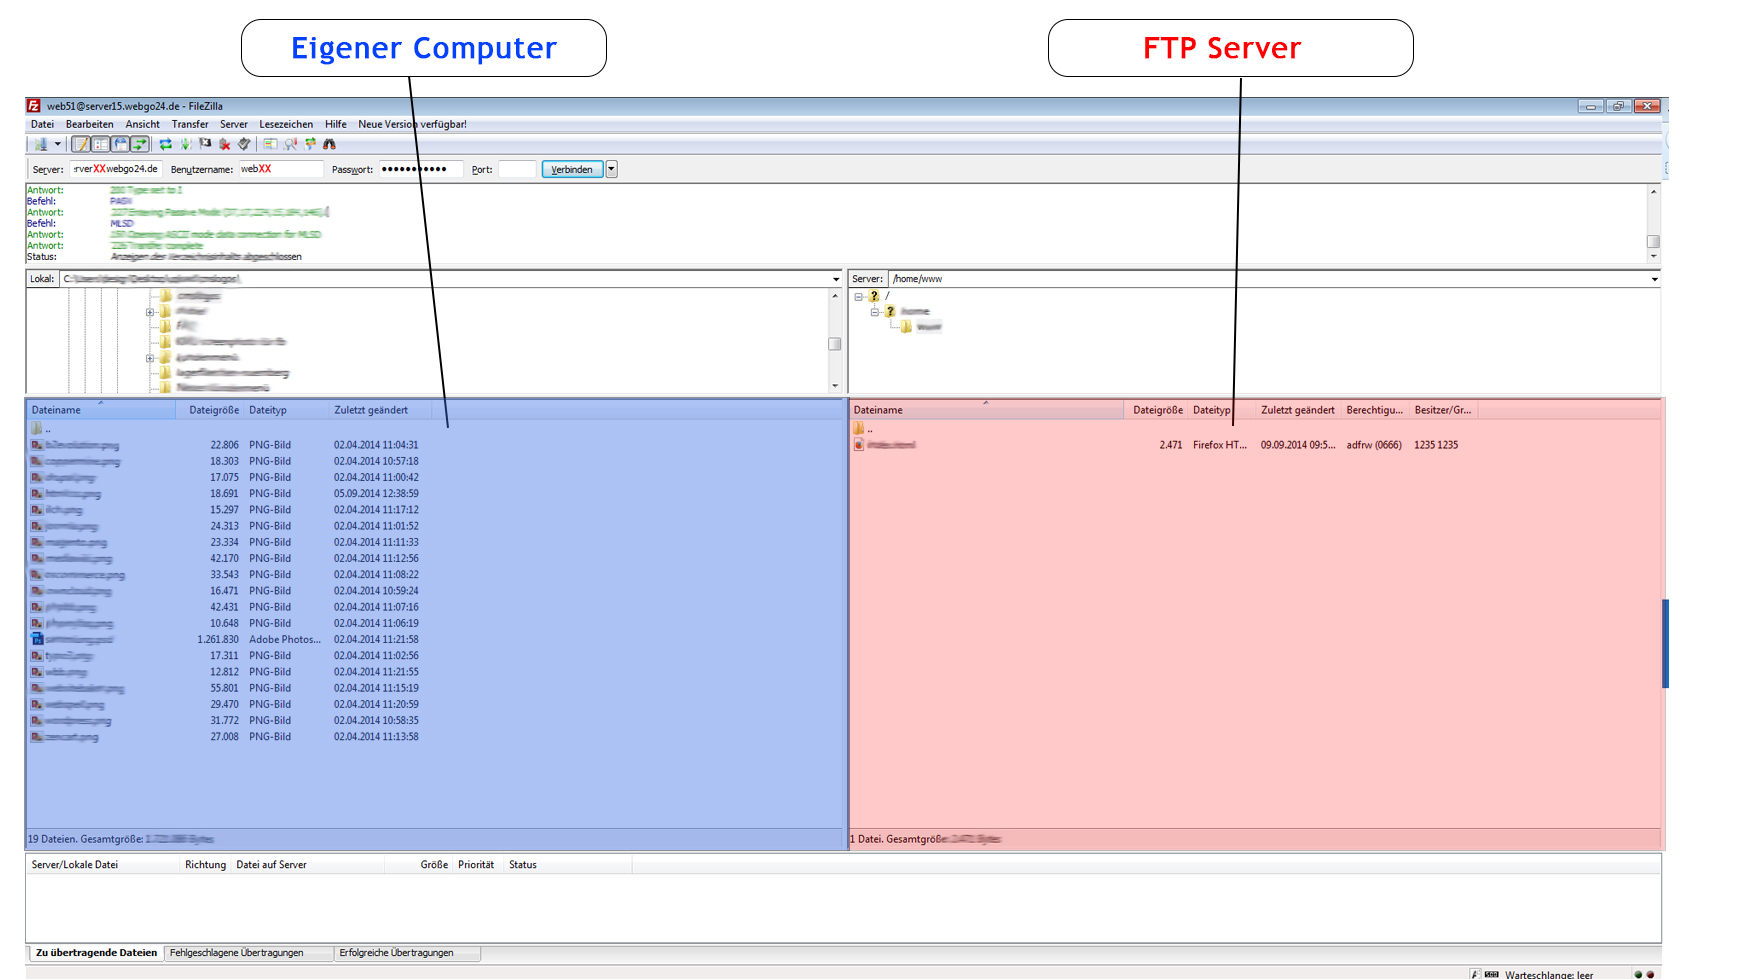 Filezilla_Compuert_FTP_Server